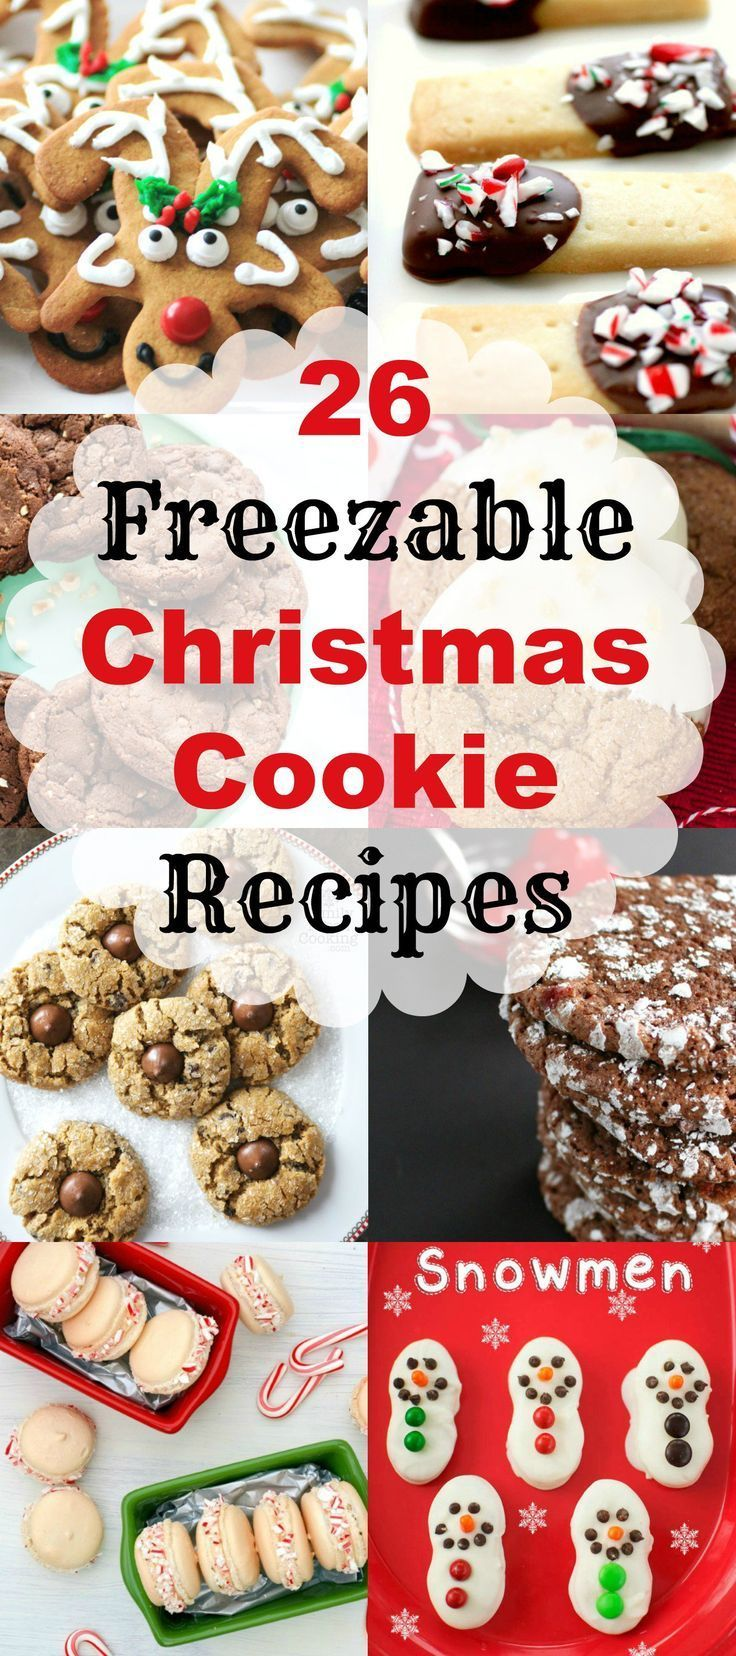 Easy baked goodies as christmas gifts